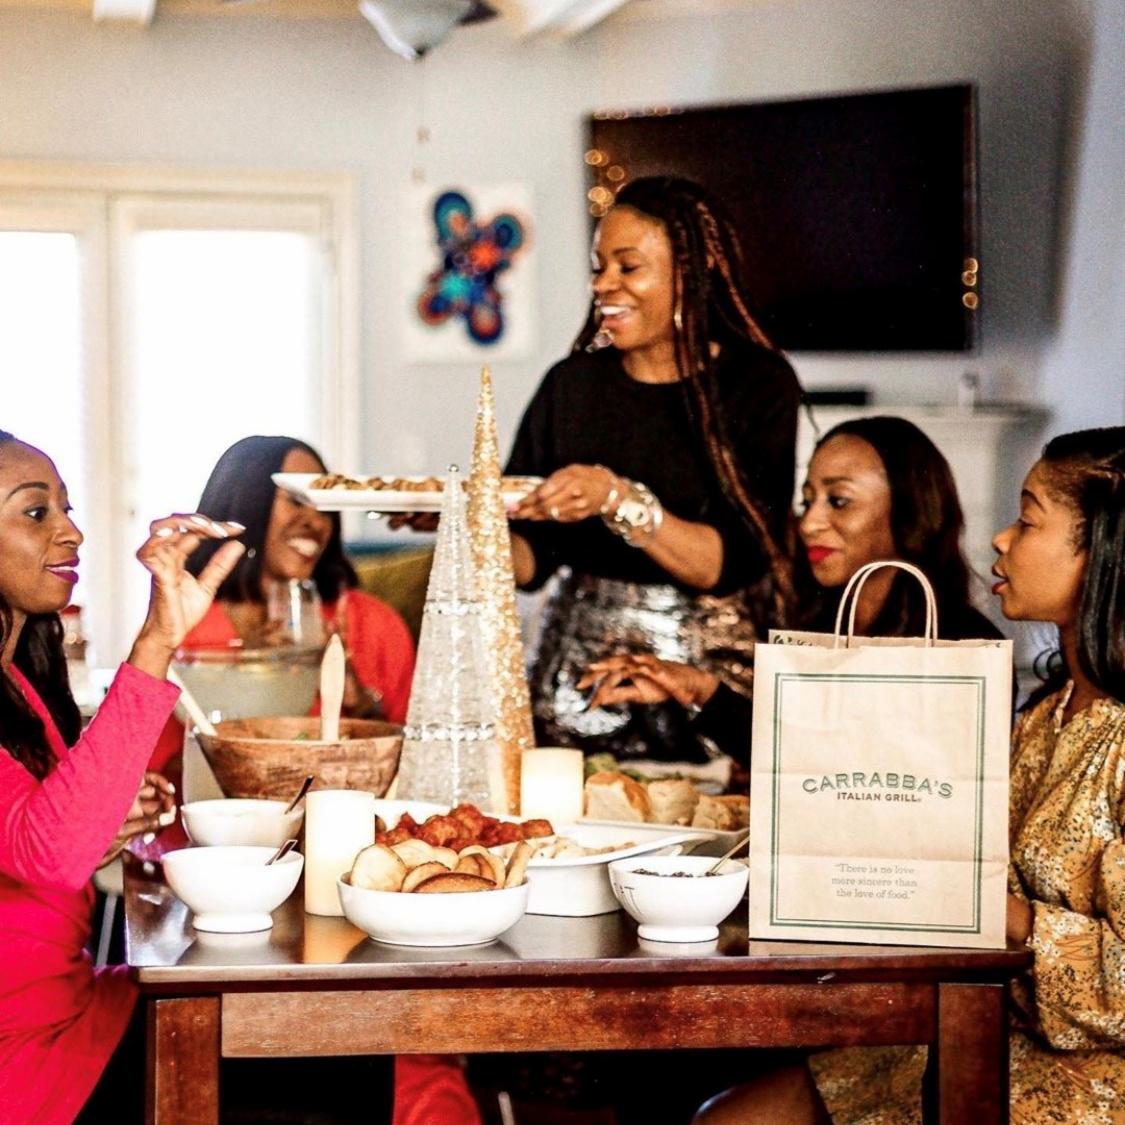 photo of a group of black women eating at Carrabba's, a restaurant chain that has been hit hard by the pandemic